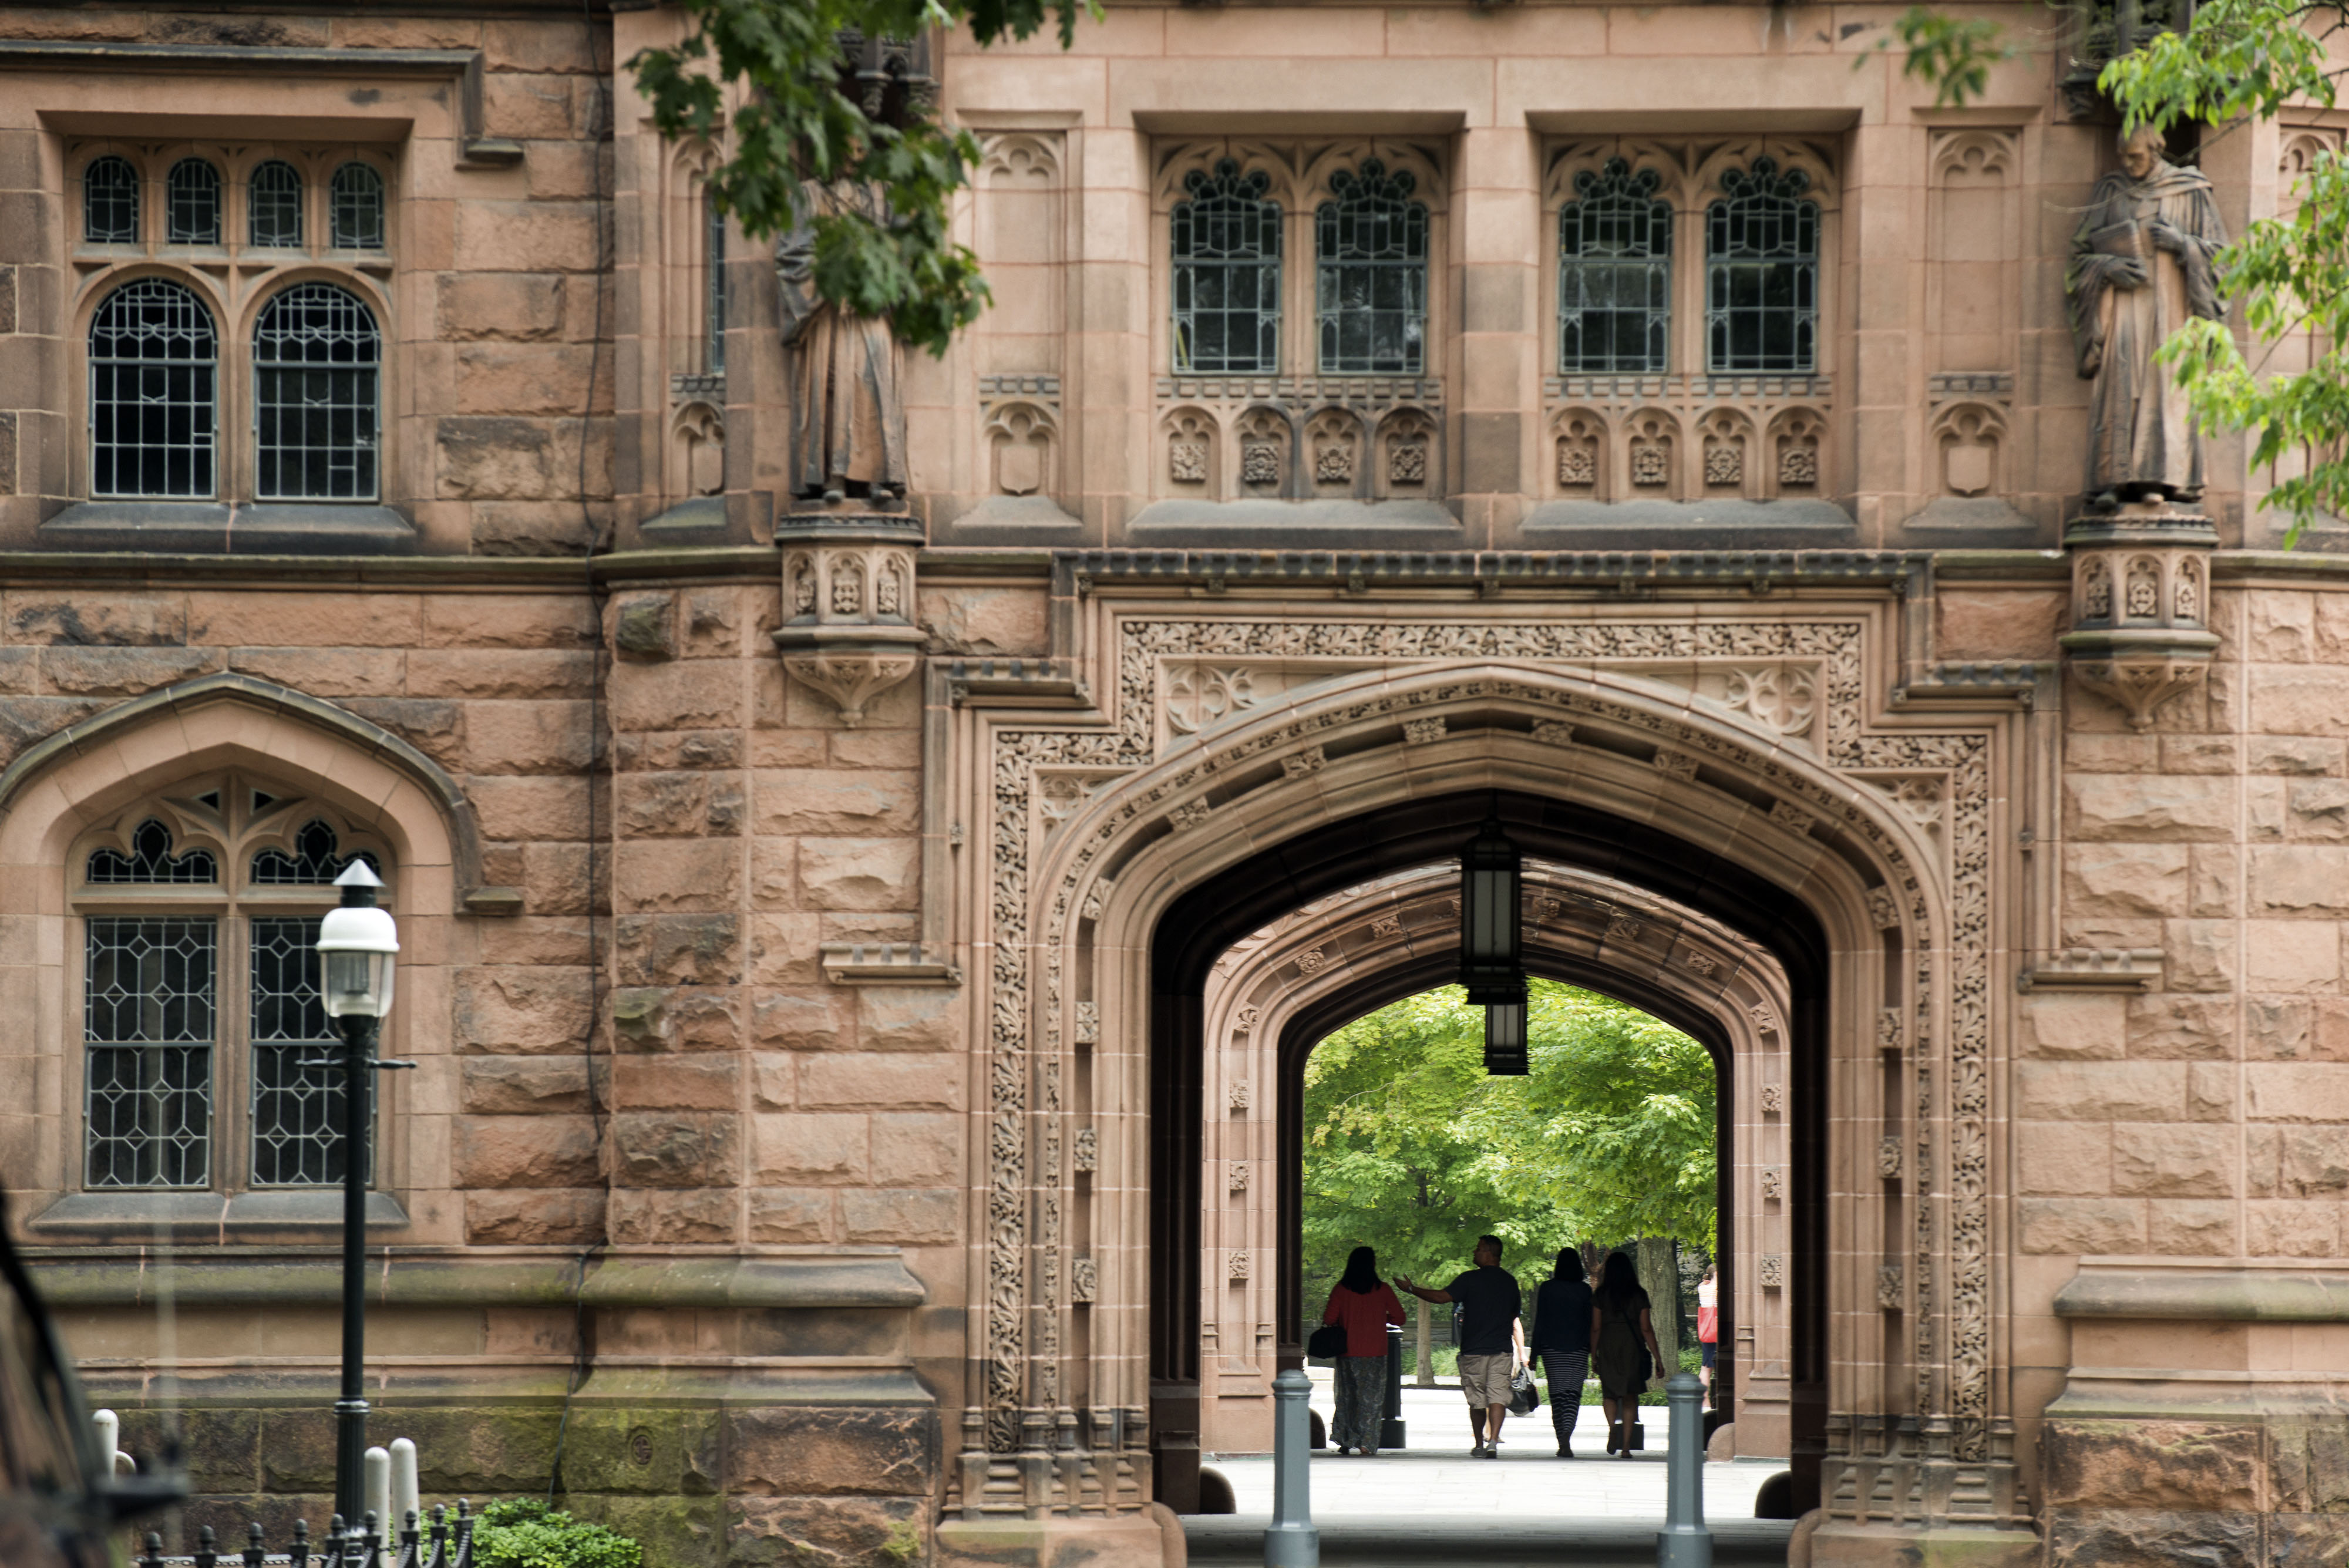 People walk on Princeton University campus in Princeton, New Jersey, U.S., on Friday, Aug. 30, 2013. Photographer: Craig Warga/Bloomberg via Getty Images